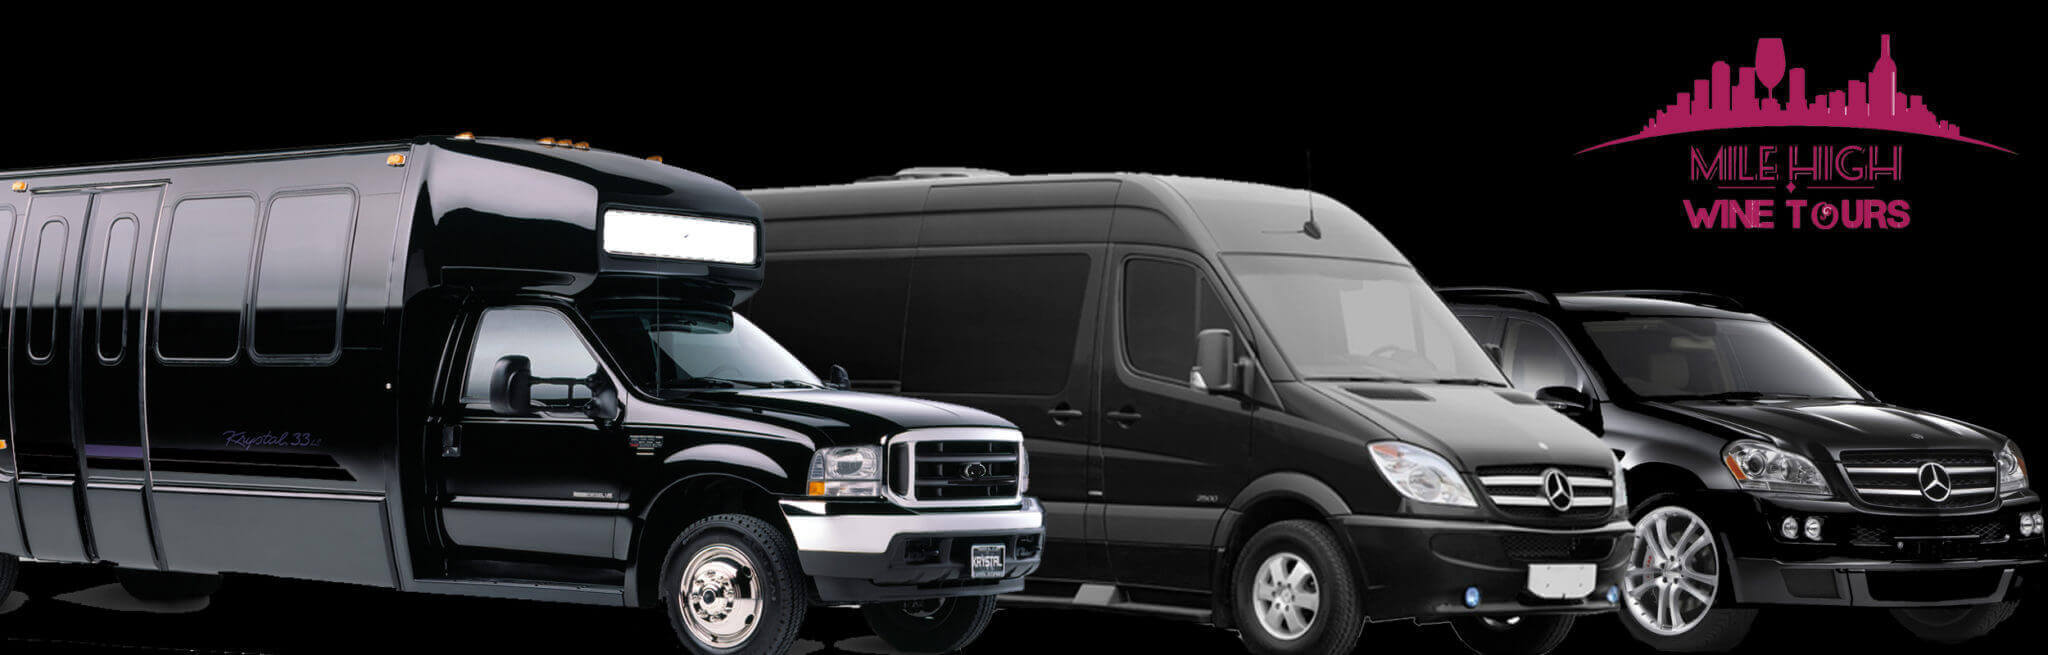 Mile High Wine Tours Fleet